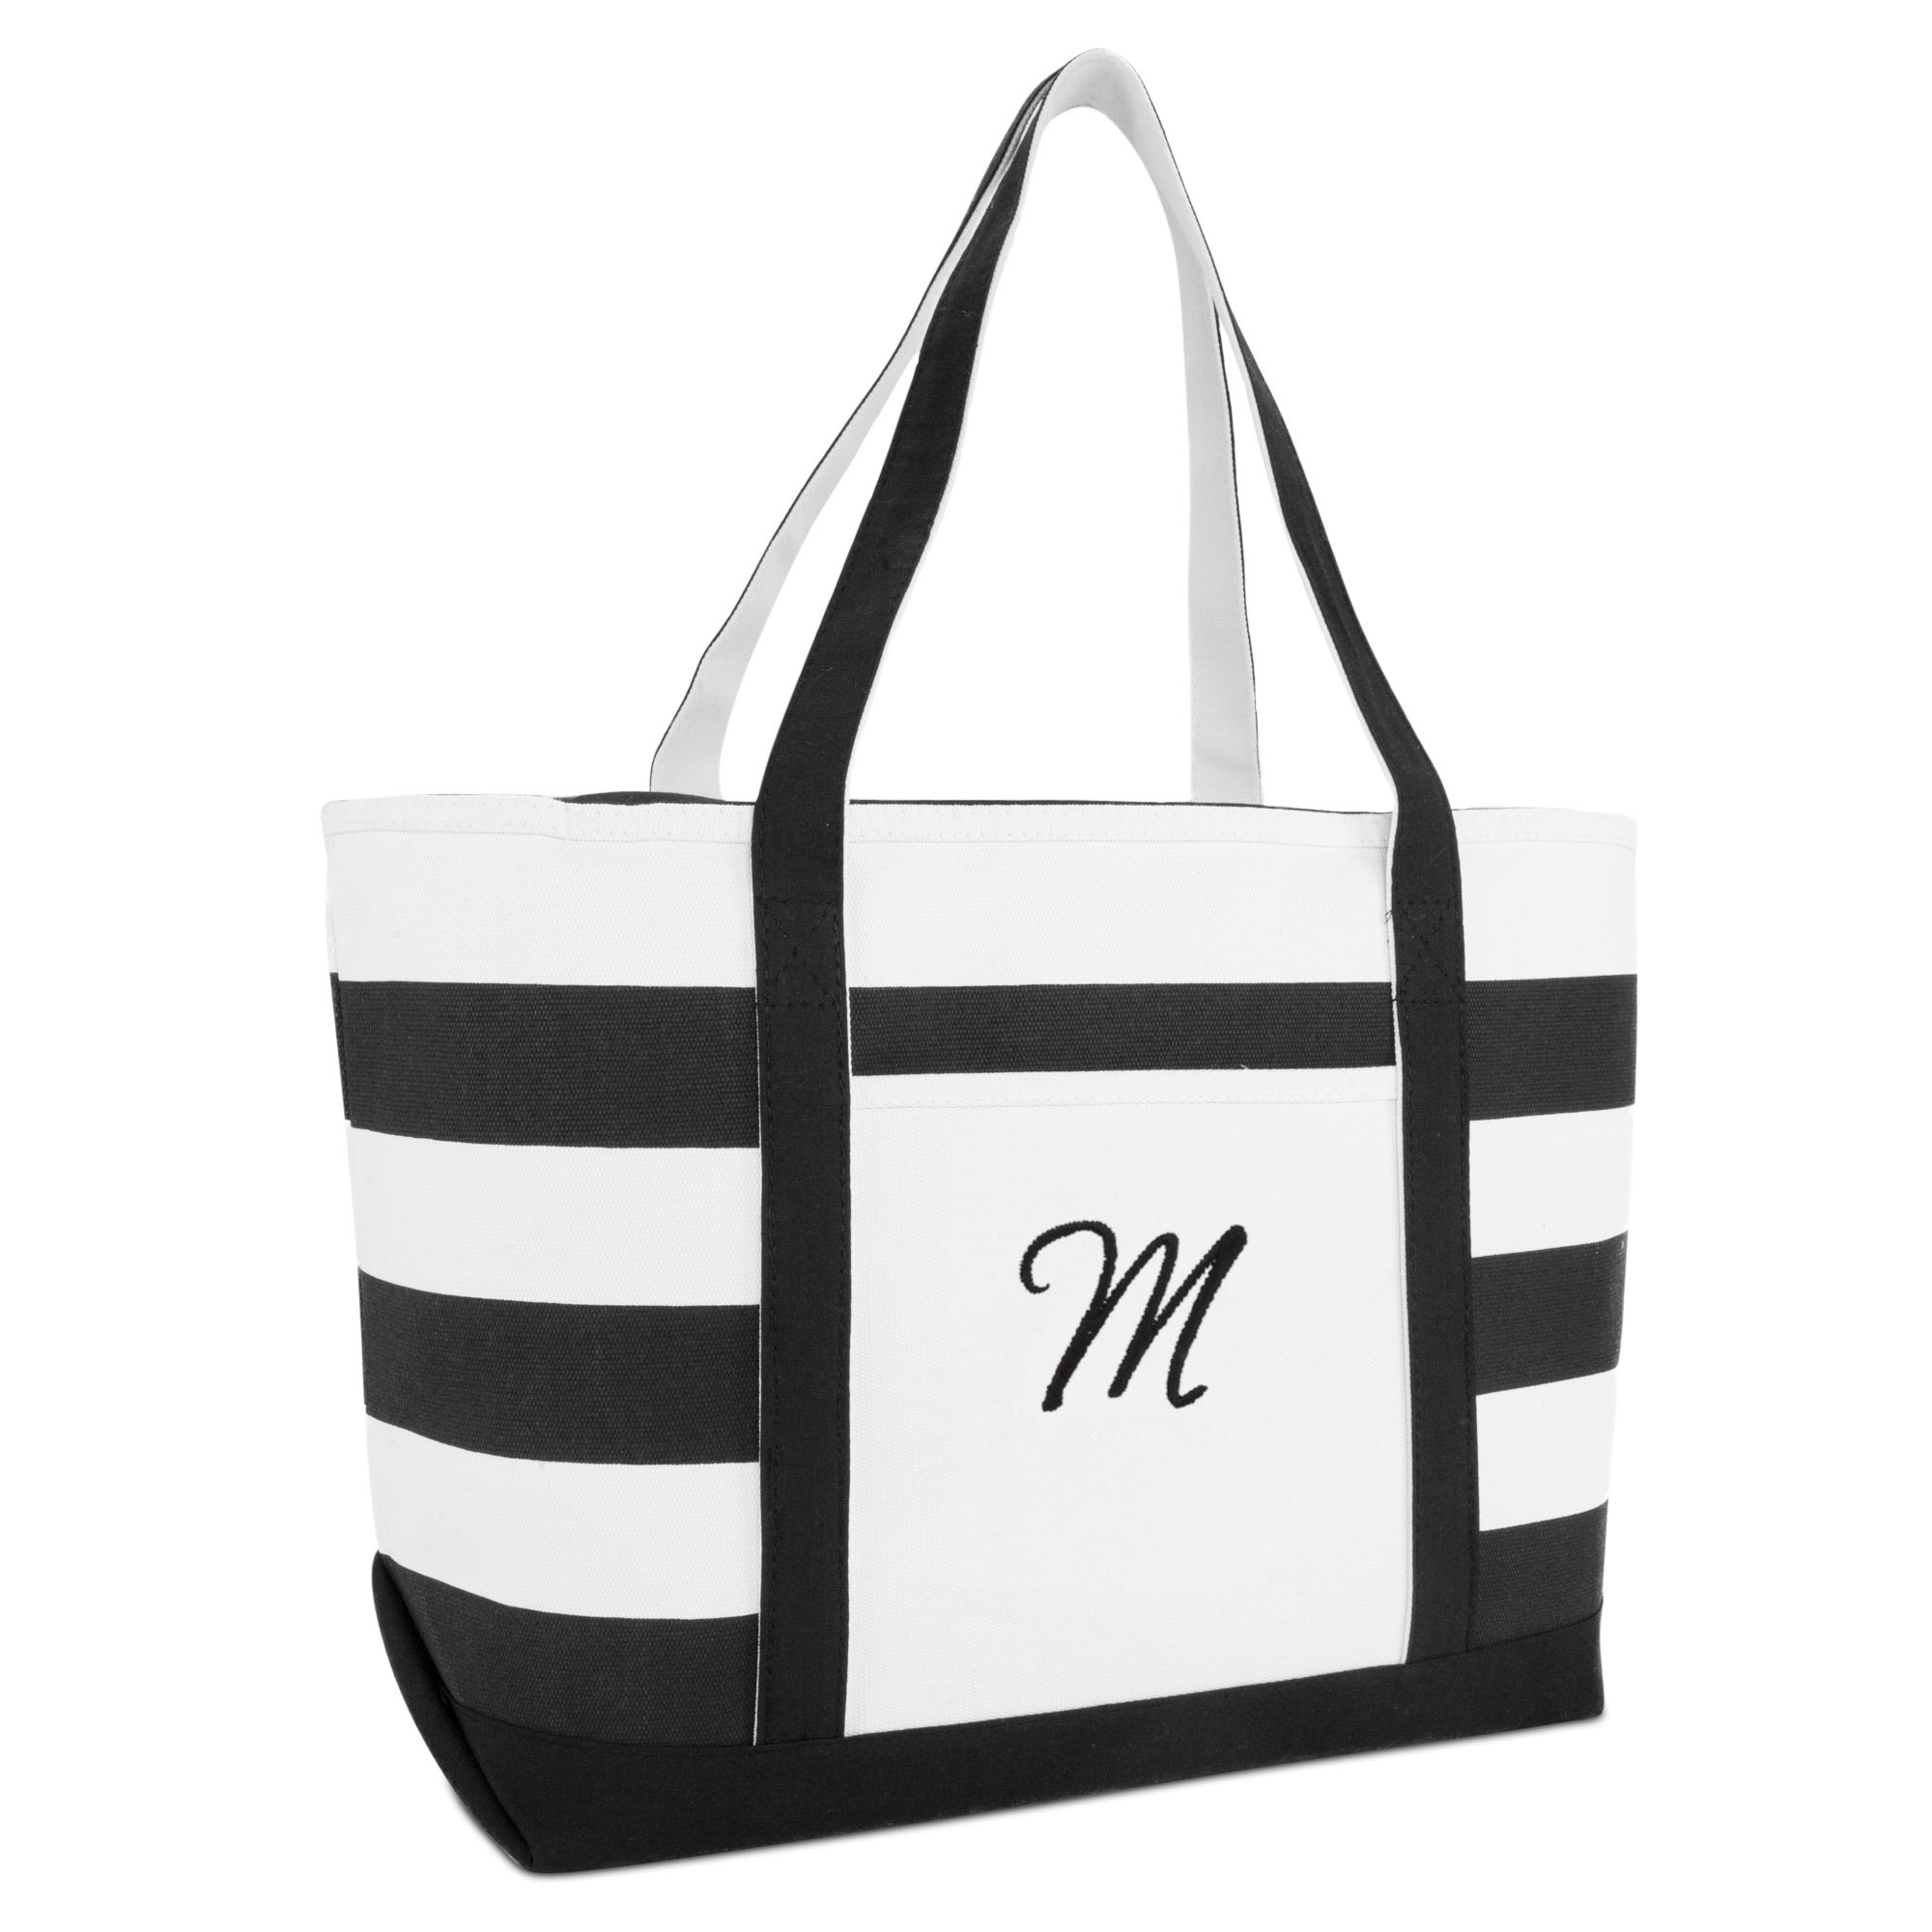 DALIX Striped Beach Bag Tote Bags Satchel Personalized Black Ballent Letter M